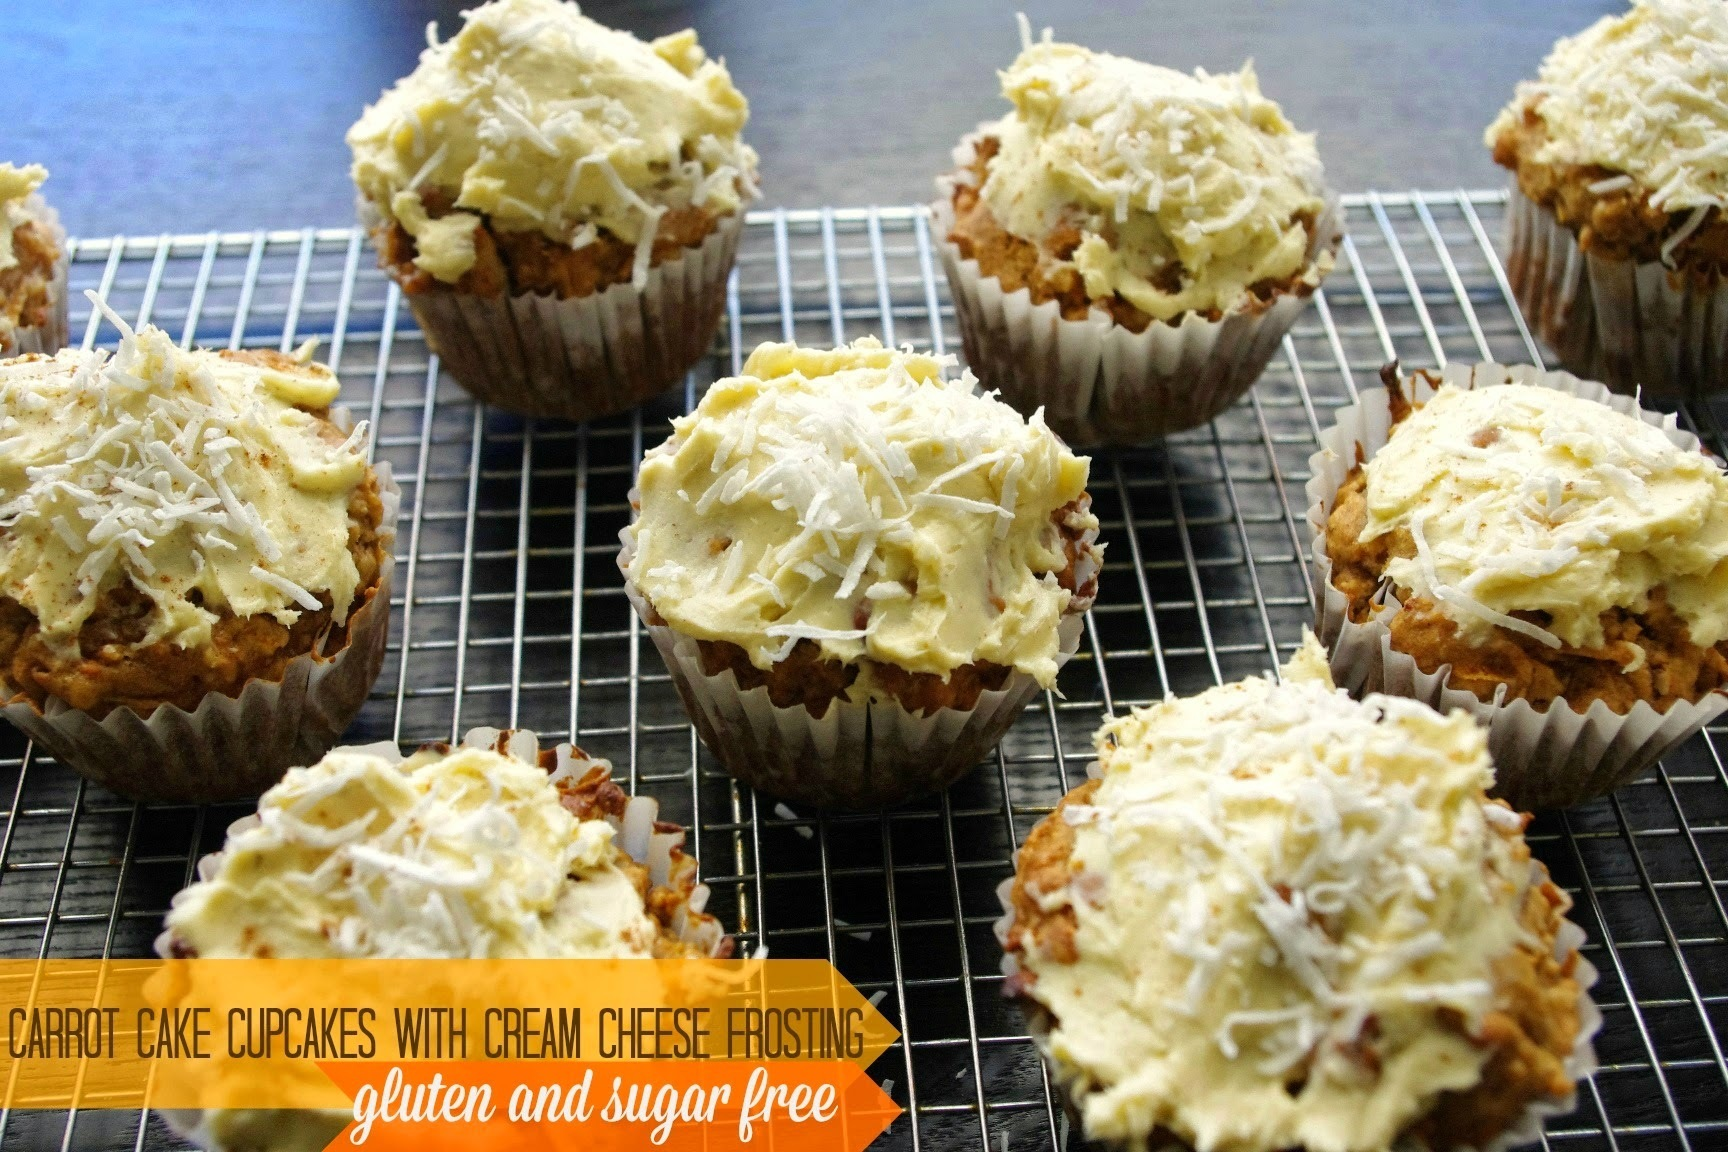 Carrot cake cupcakes with cream cheese icing - gluten and sugar free